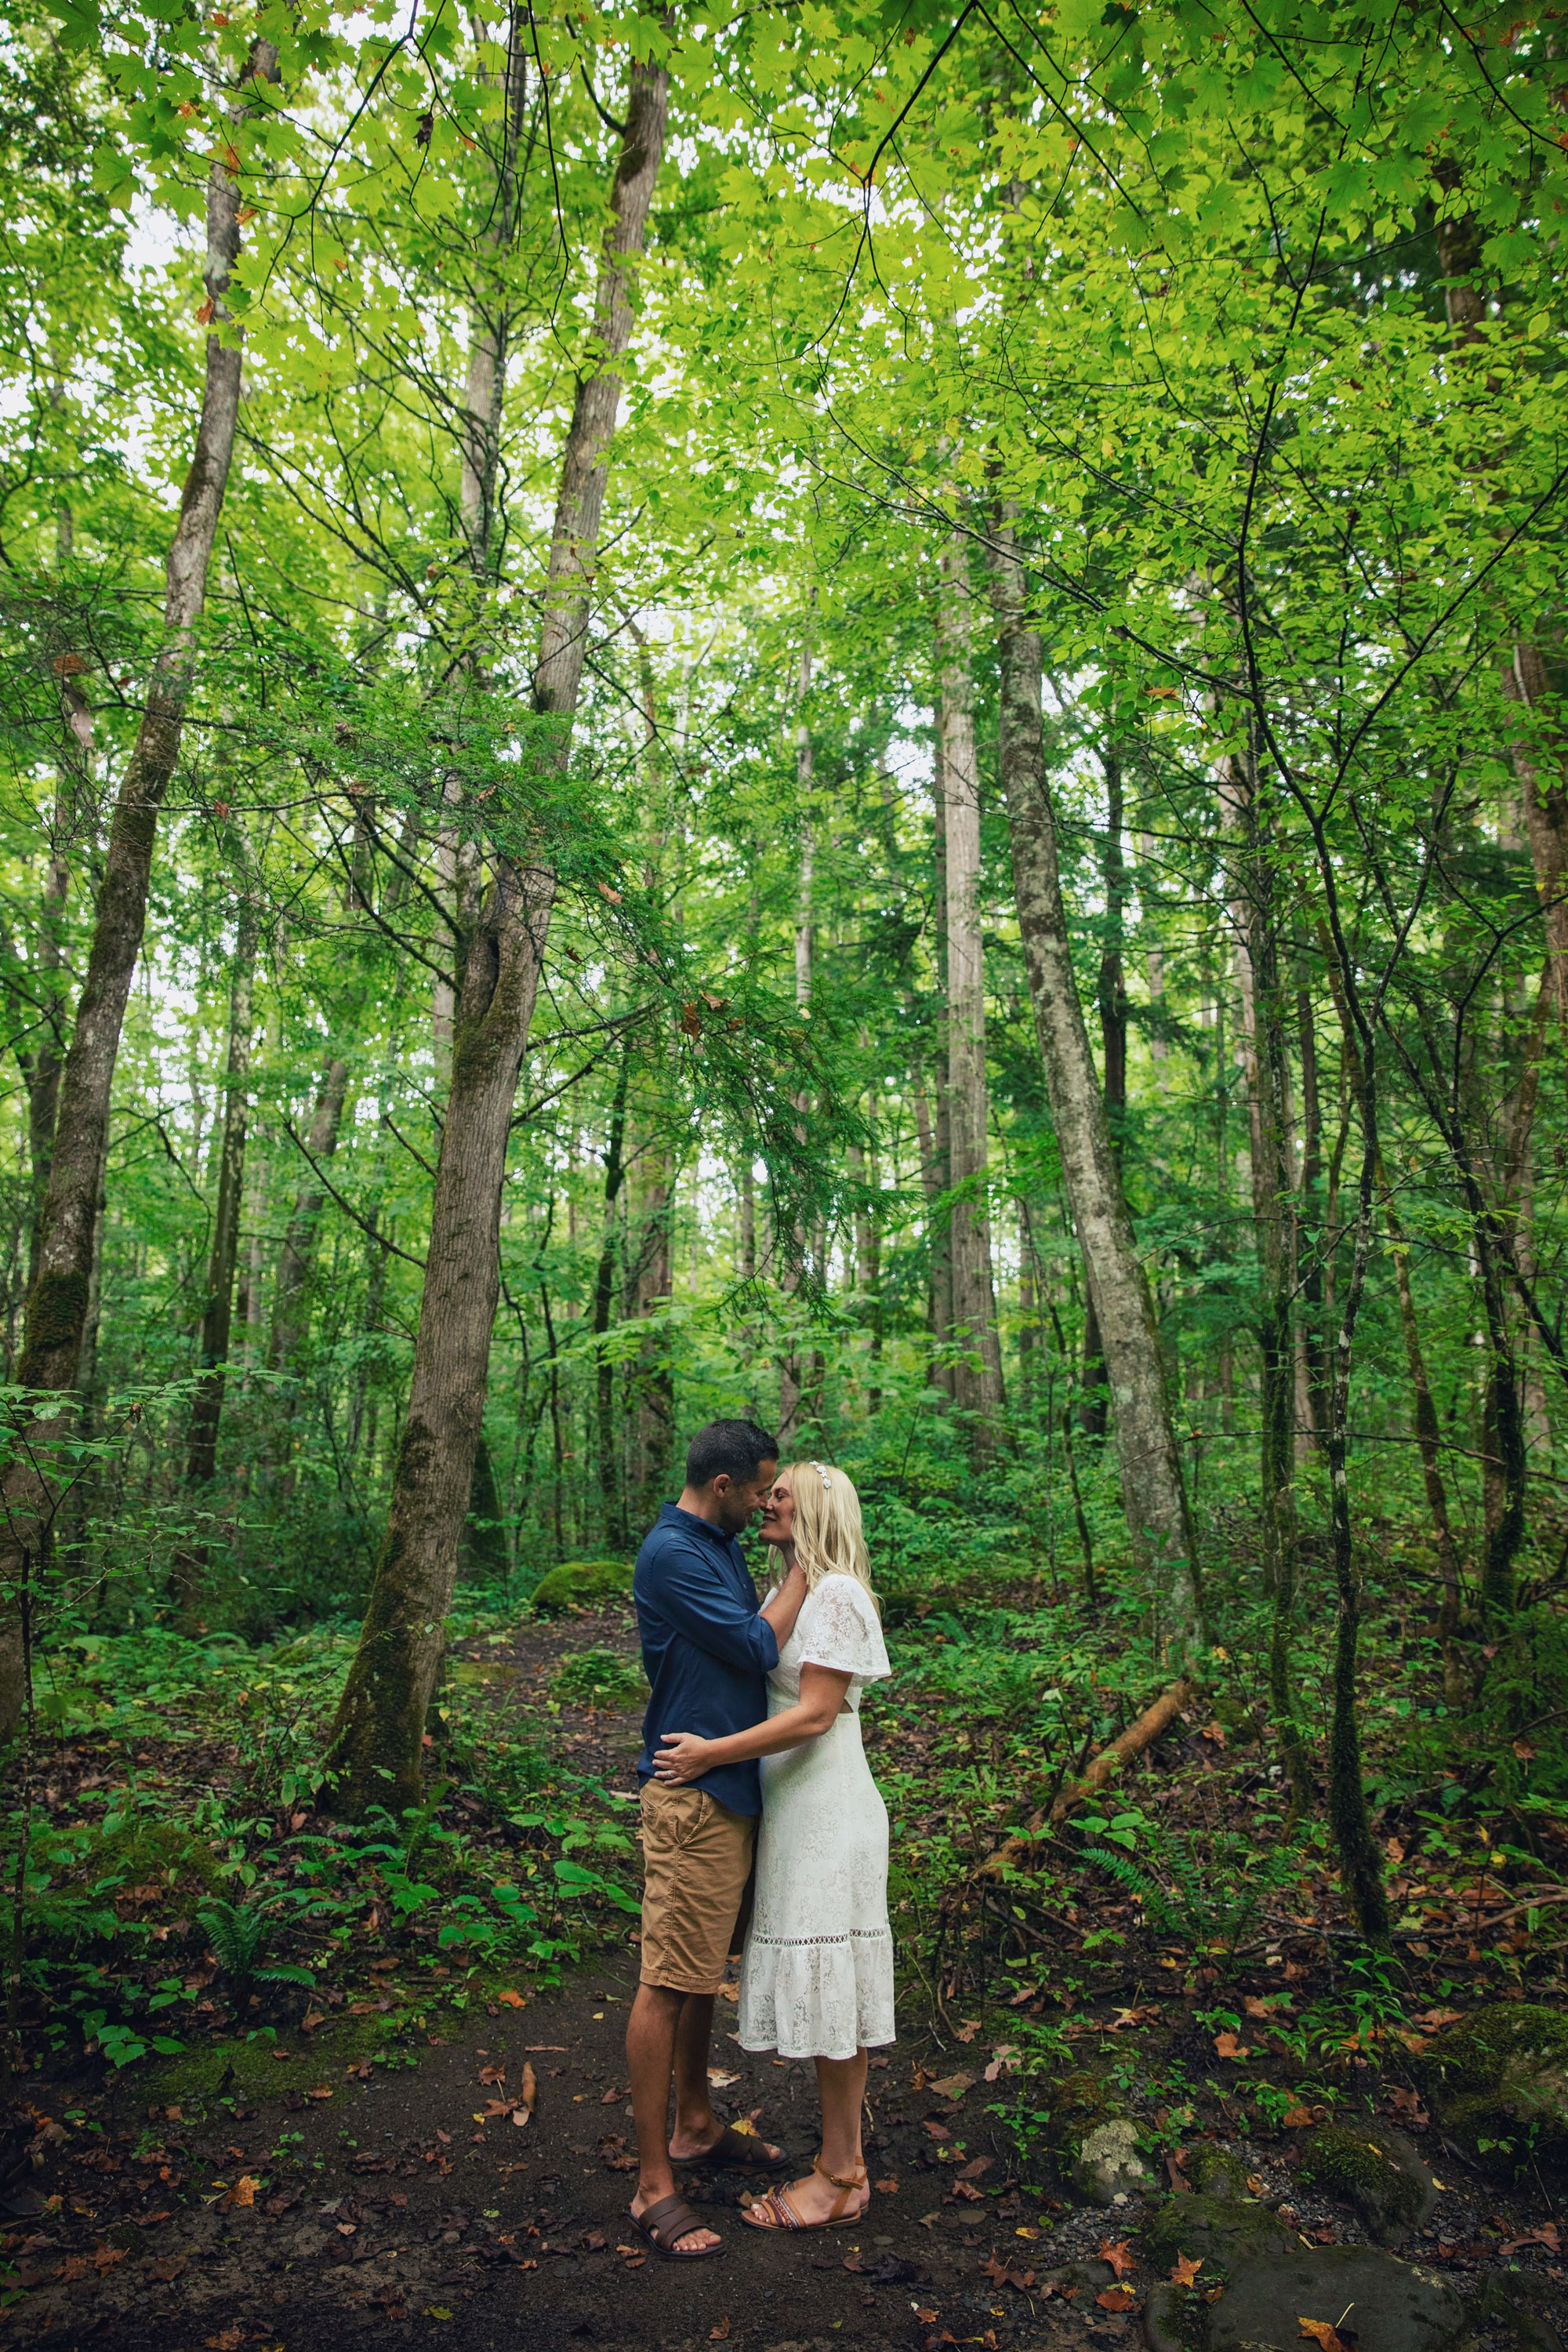 elope-to-gatlinburg-wedding-packages-photography.jpg